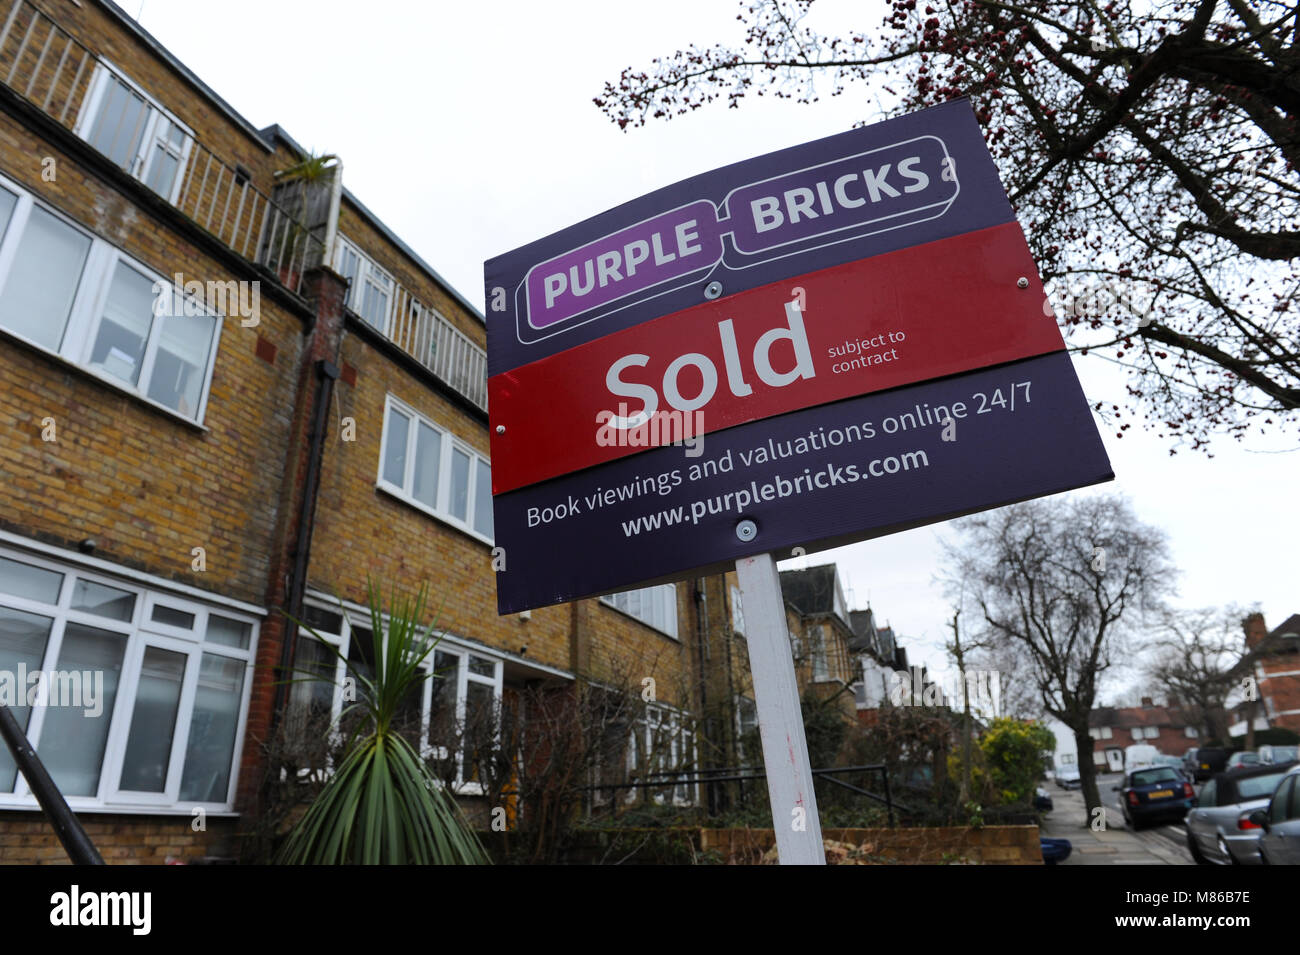 A Purple Bricks sold estate agent sign outside a house in Muswell Hill, London - Stock Image